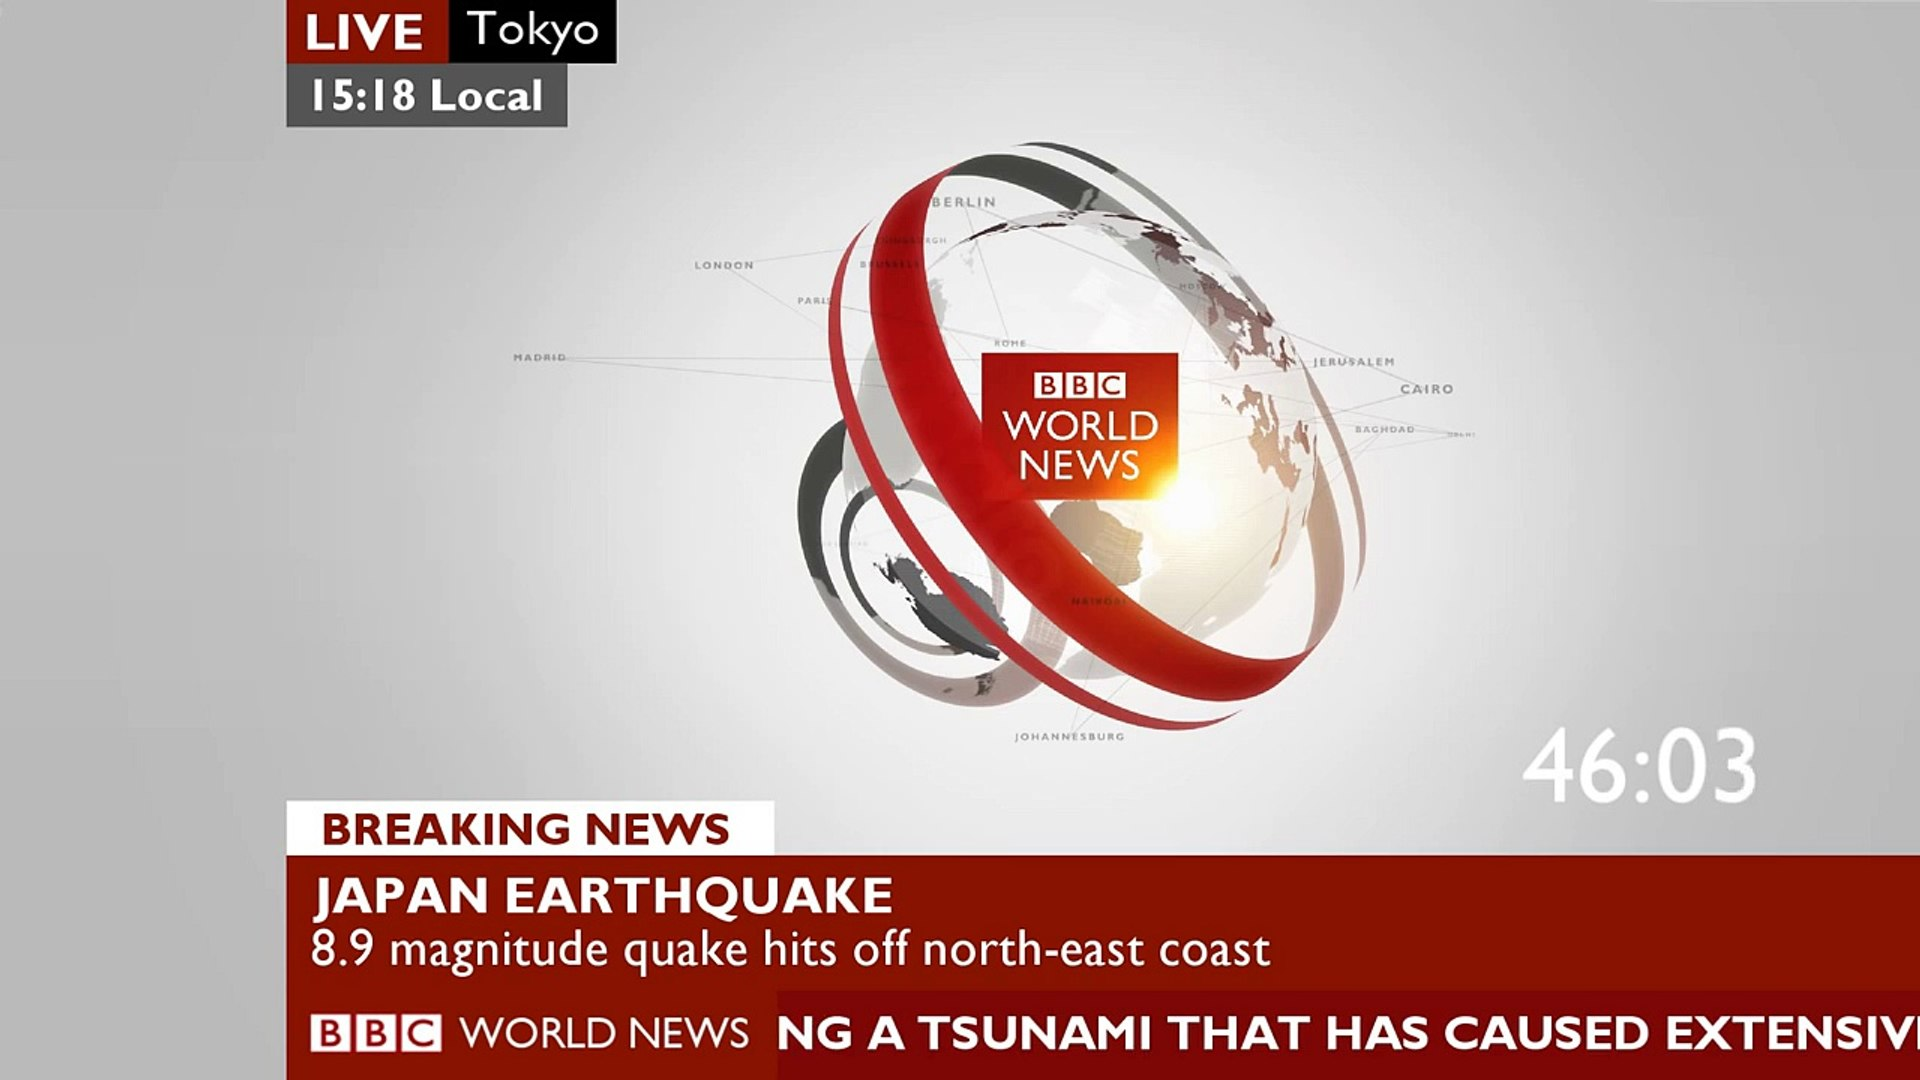 BBC -- World News - 'BREAKING NEWS' (ticker tape) 【Full-HD】